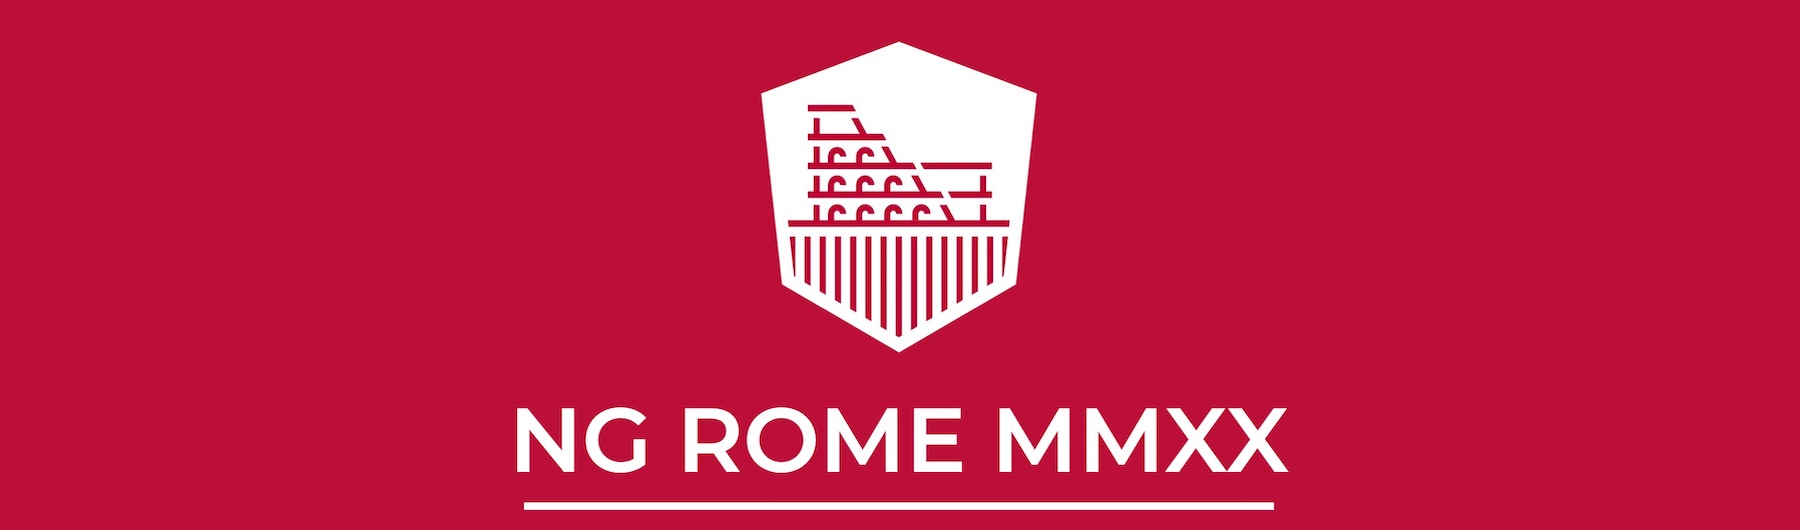 NGRome Conf MMXX Online 20th October 2020